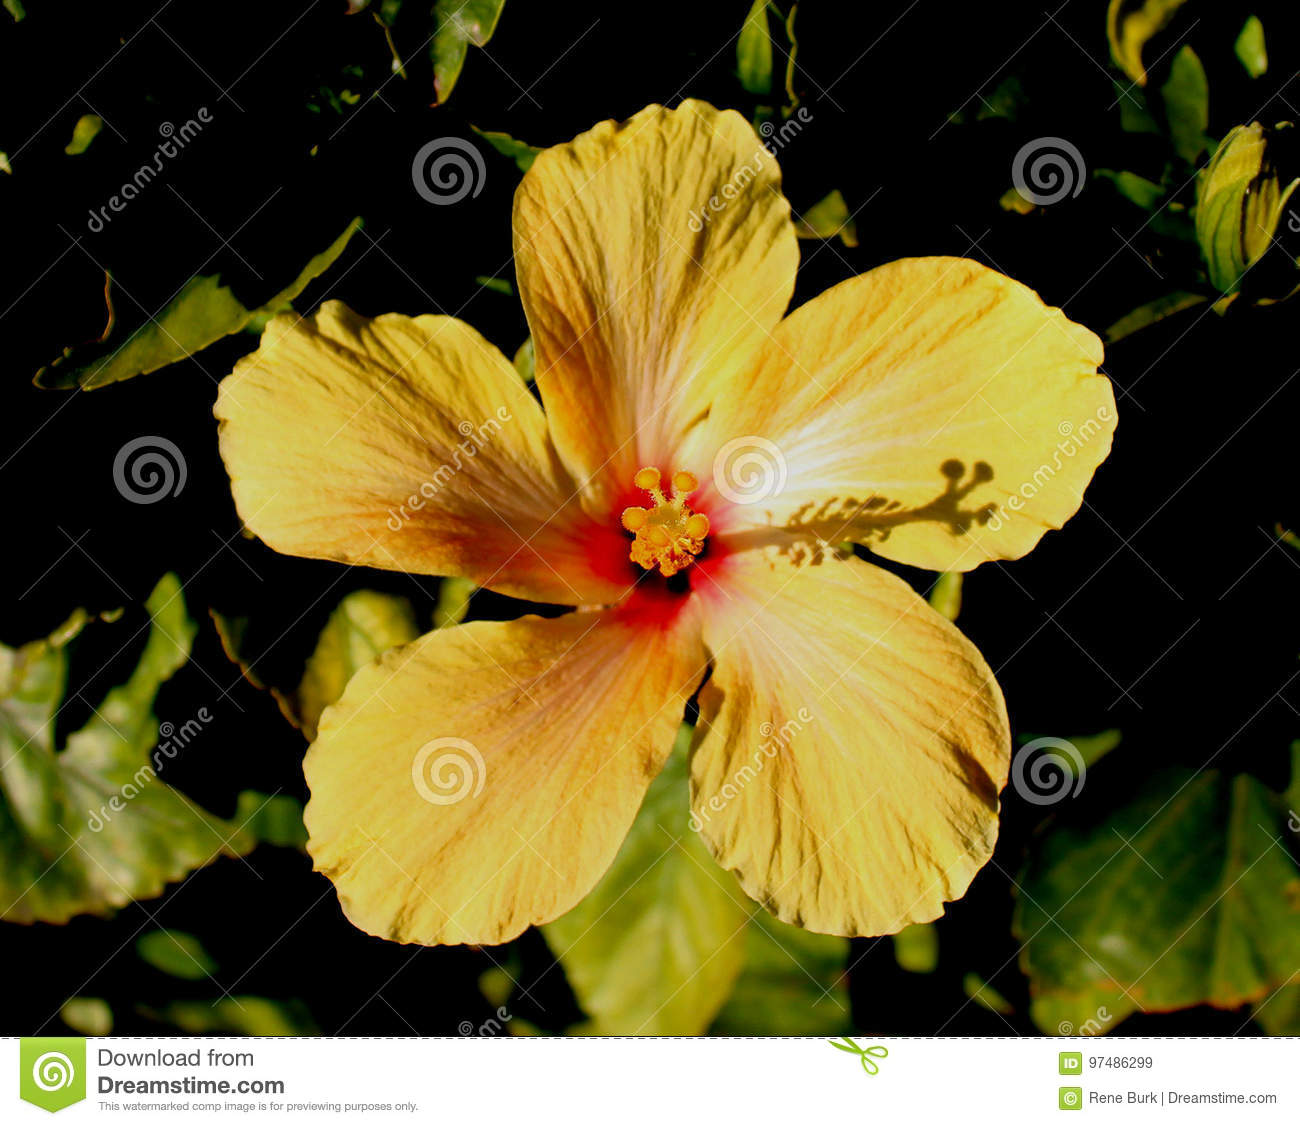 Yellow hibiscus flower stock image image of yellow mallow 97486299 yellow hibiscus flower izmirmasajfo